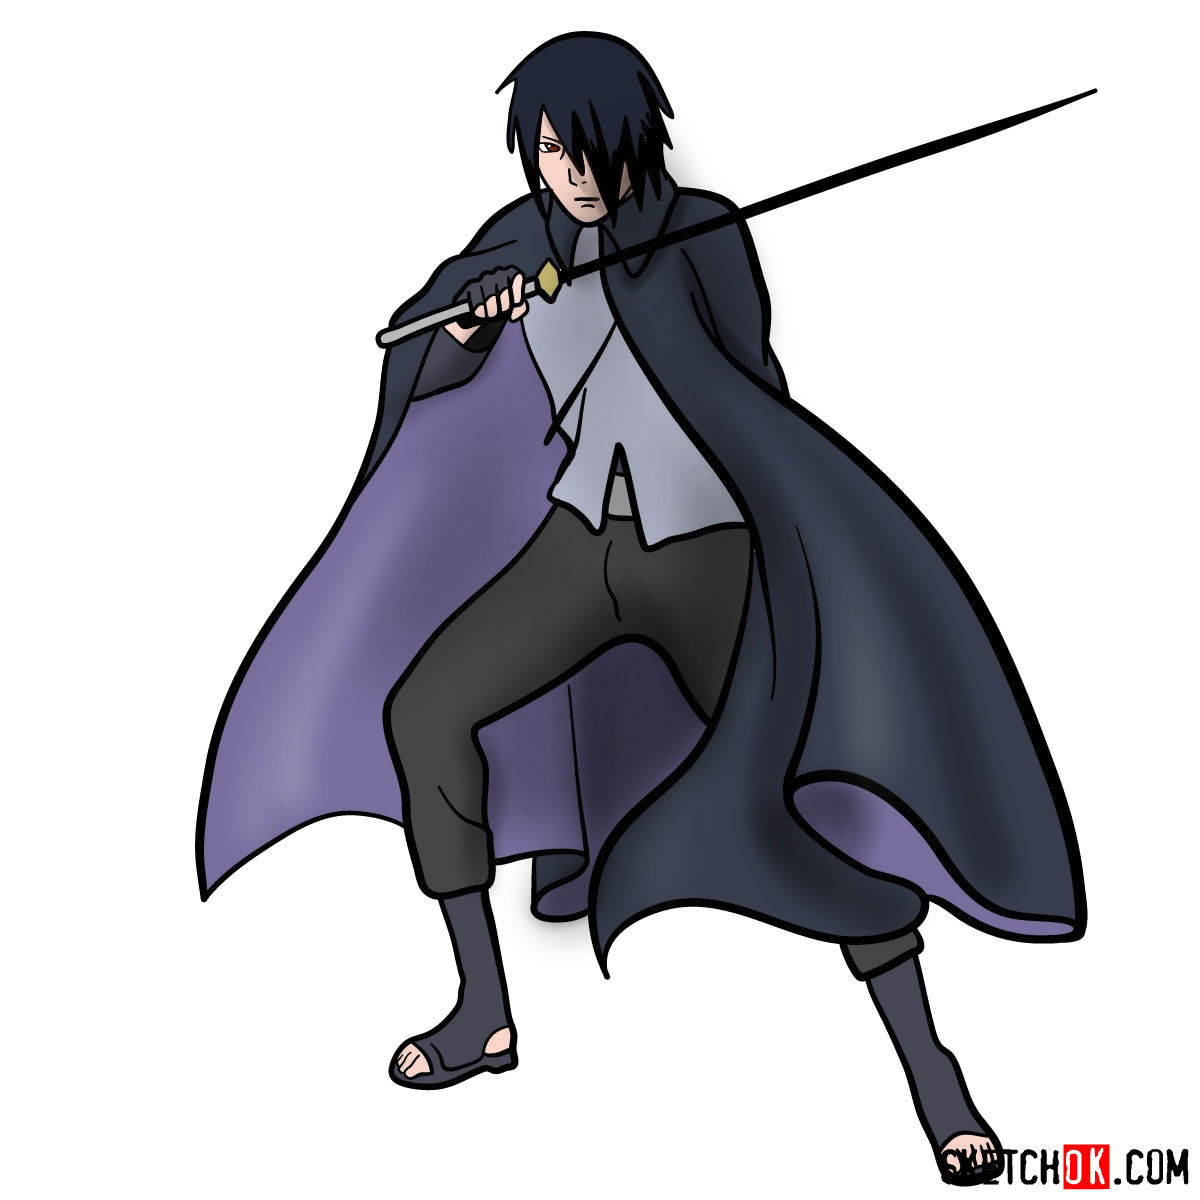 How to draw Sasuke Uchiha from Naruto anime